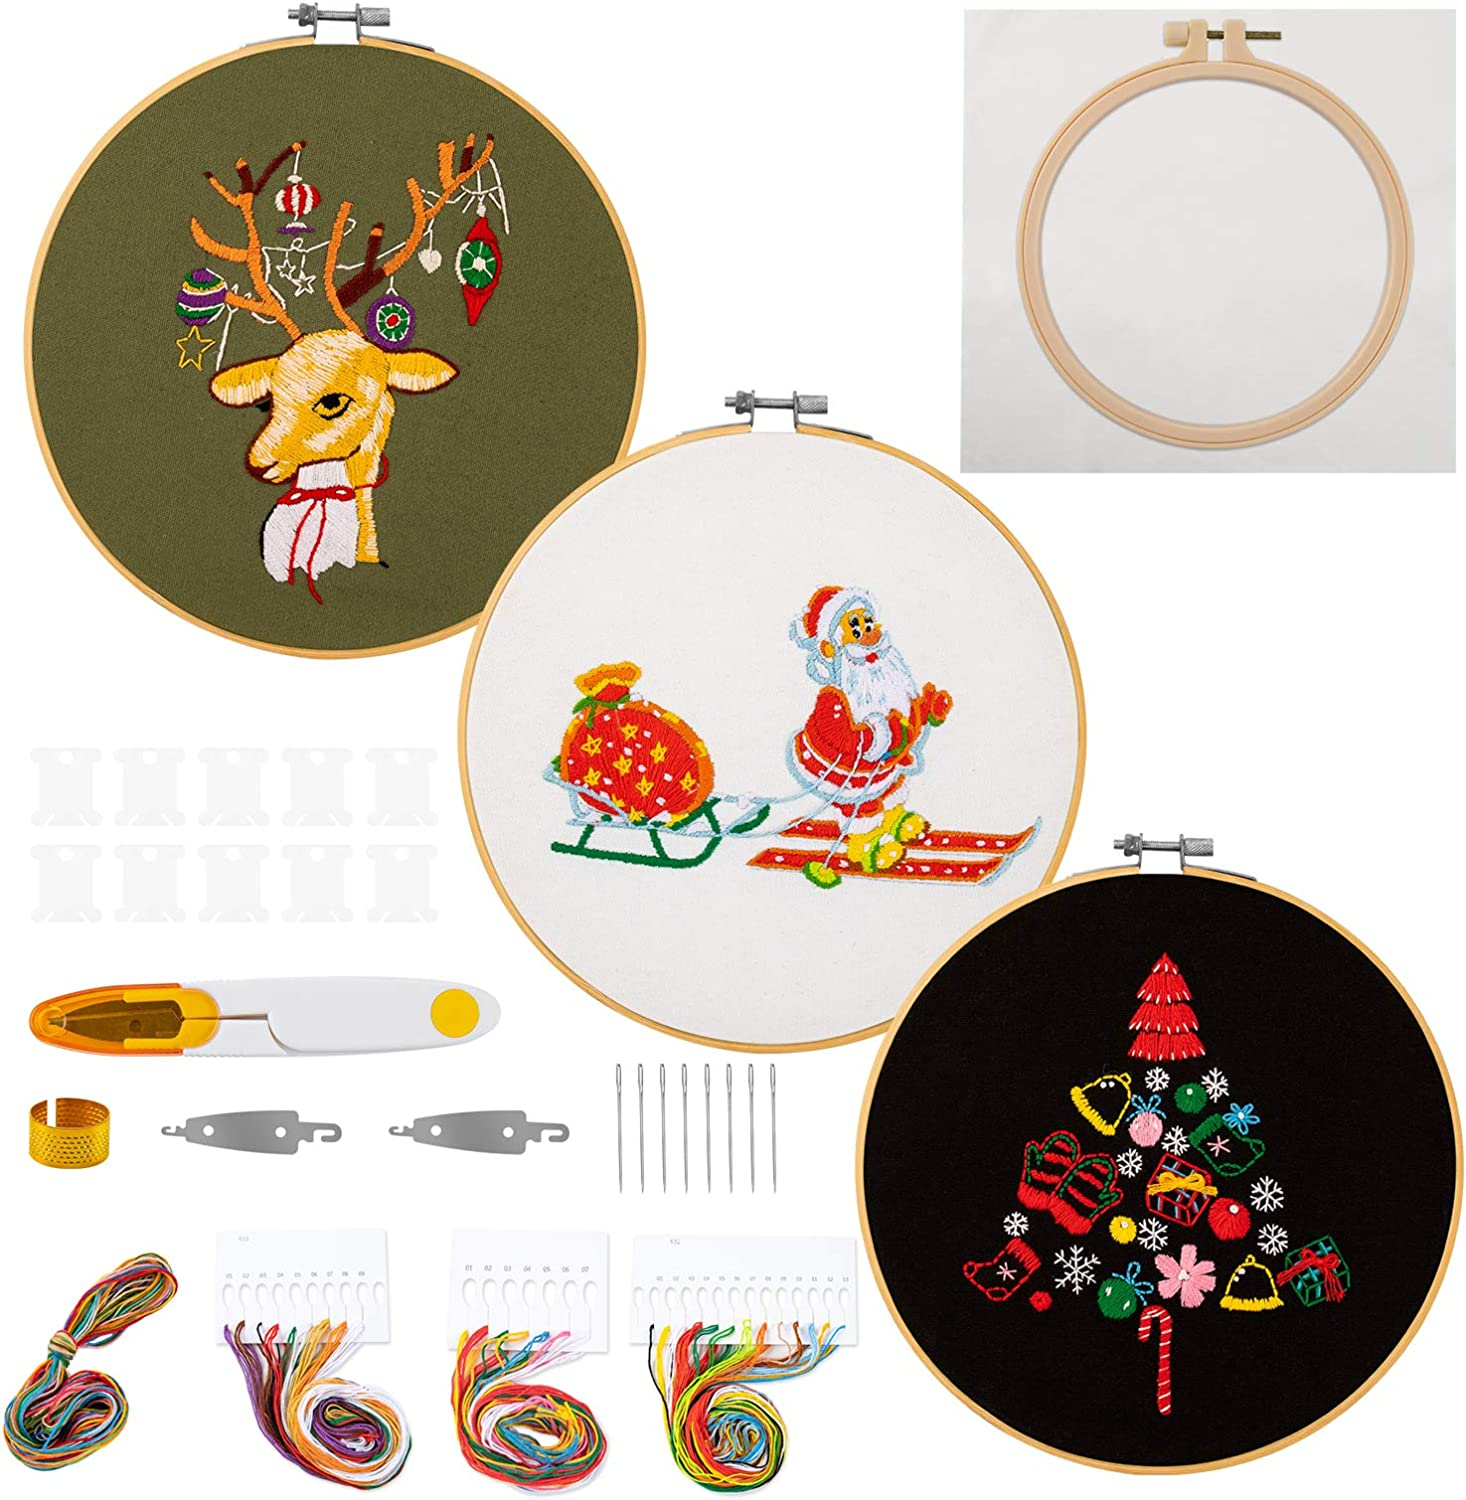 JARLINK 4 Pack Embroidery Starter Kit with Instructions, Cross Stitch Kit for Adults Beginners, Including Embroidery Hoops, Embroidery Cloth with Christmas Pattern and DIY, Color Threads and Tools